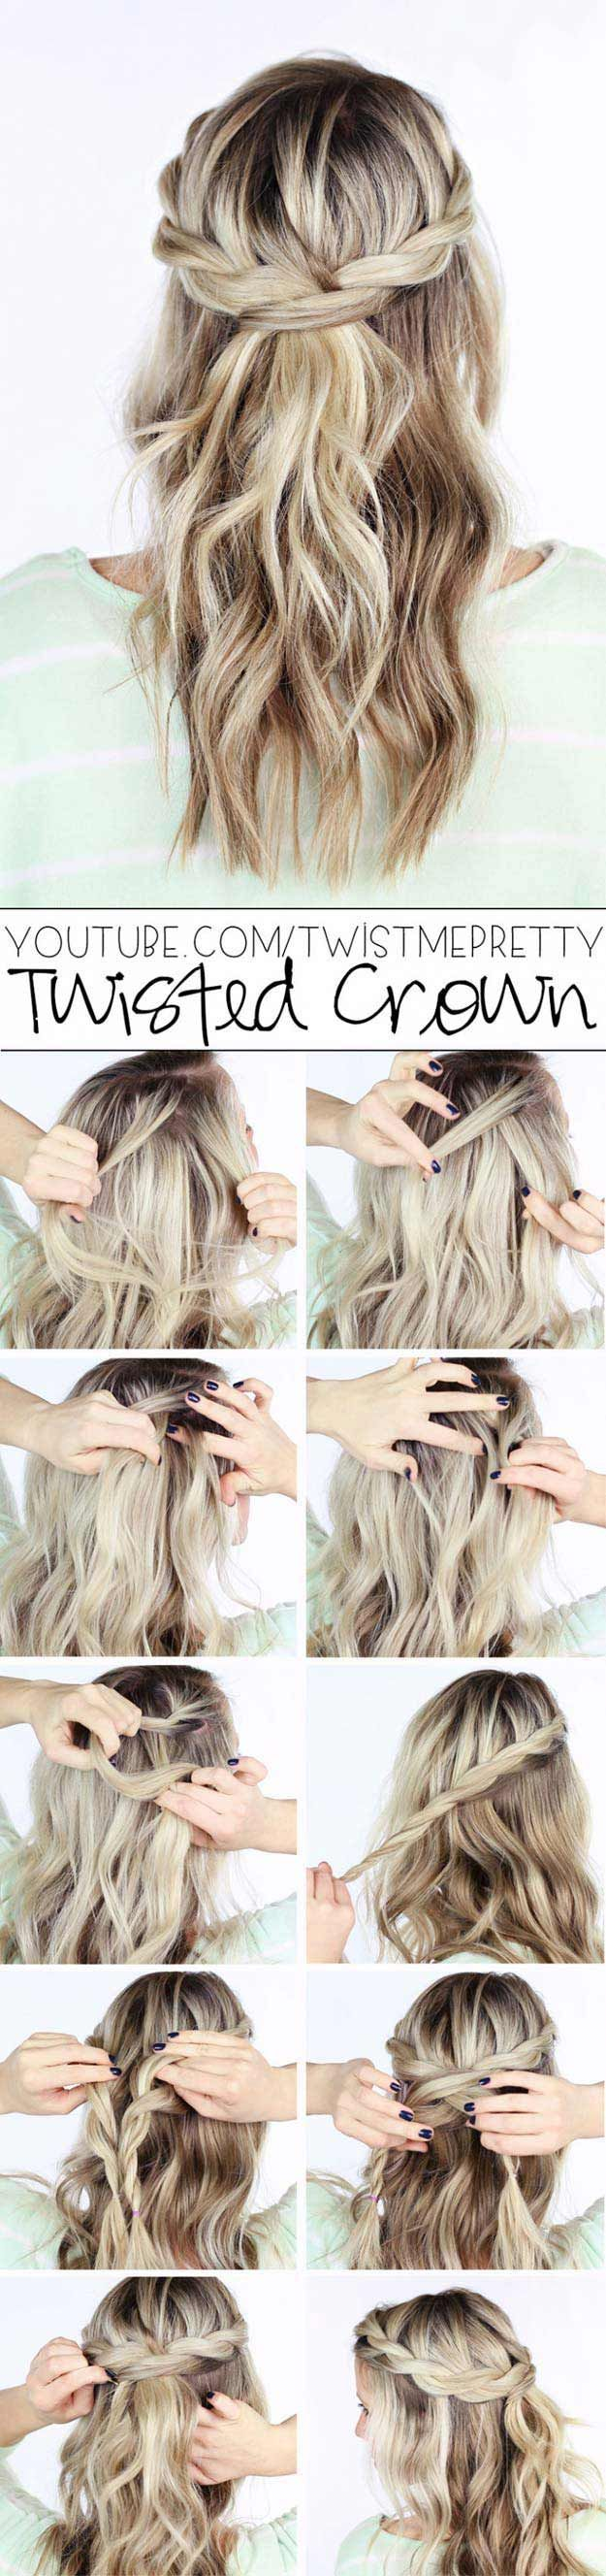 Tips To Instantly Make Your Hair Look Thicker - How To: Pull-Through BraidTwiste...